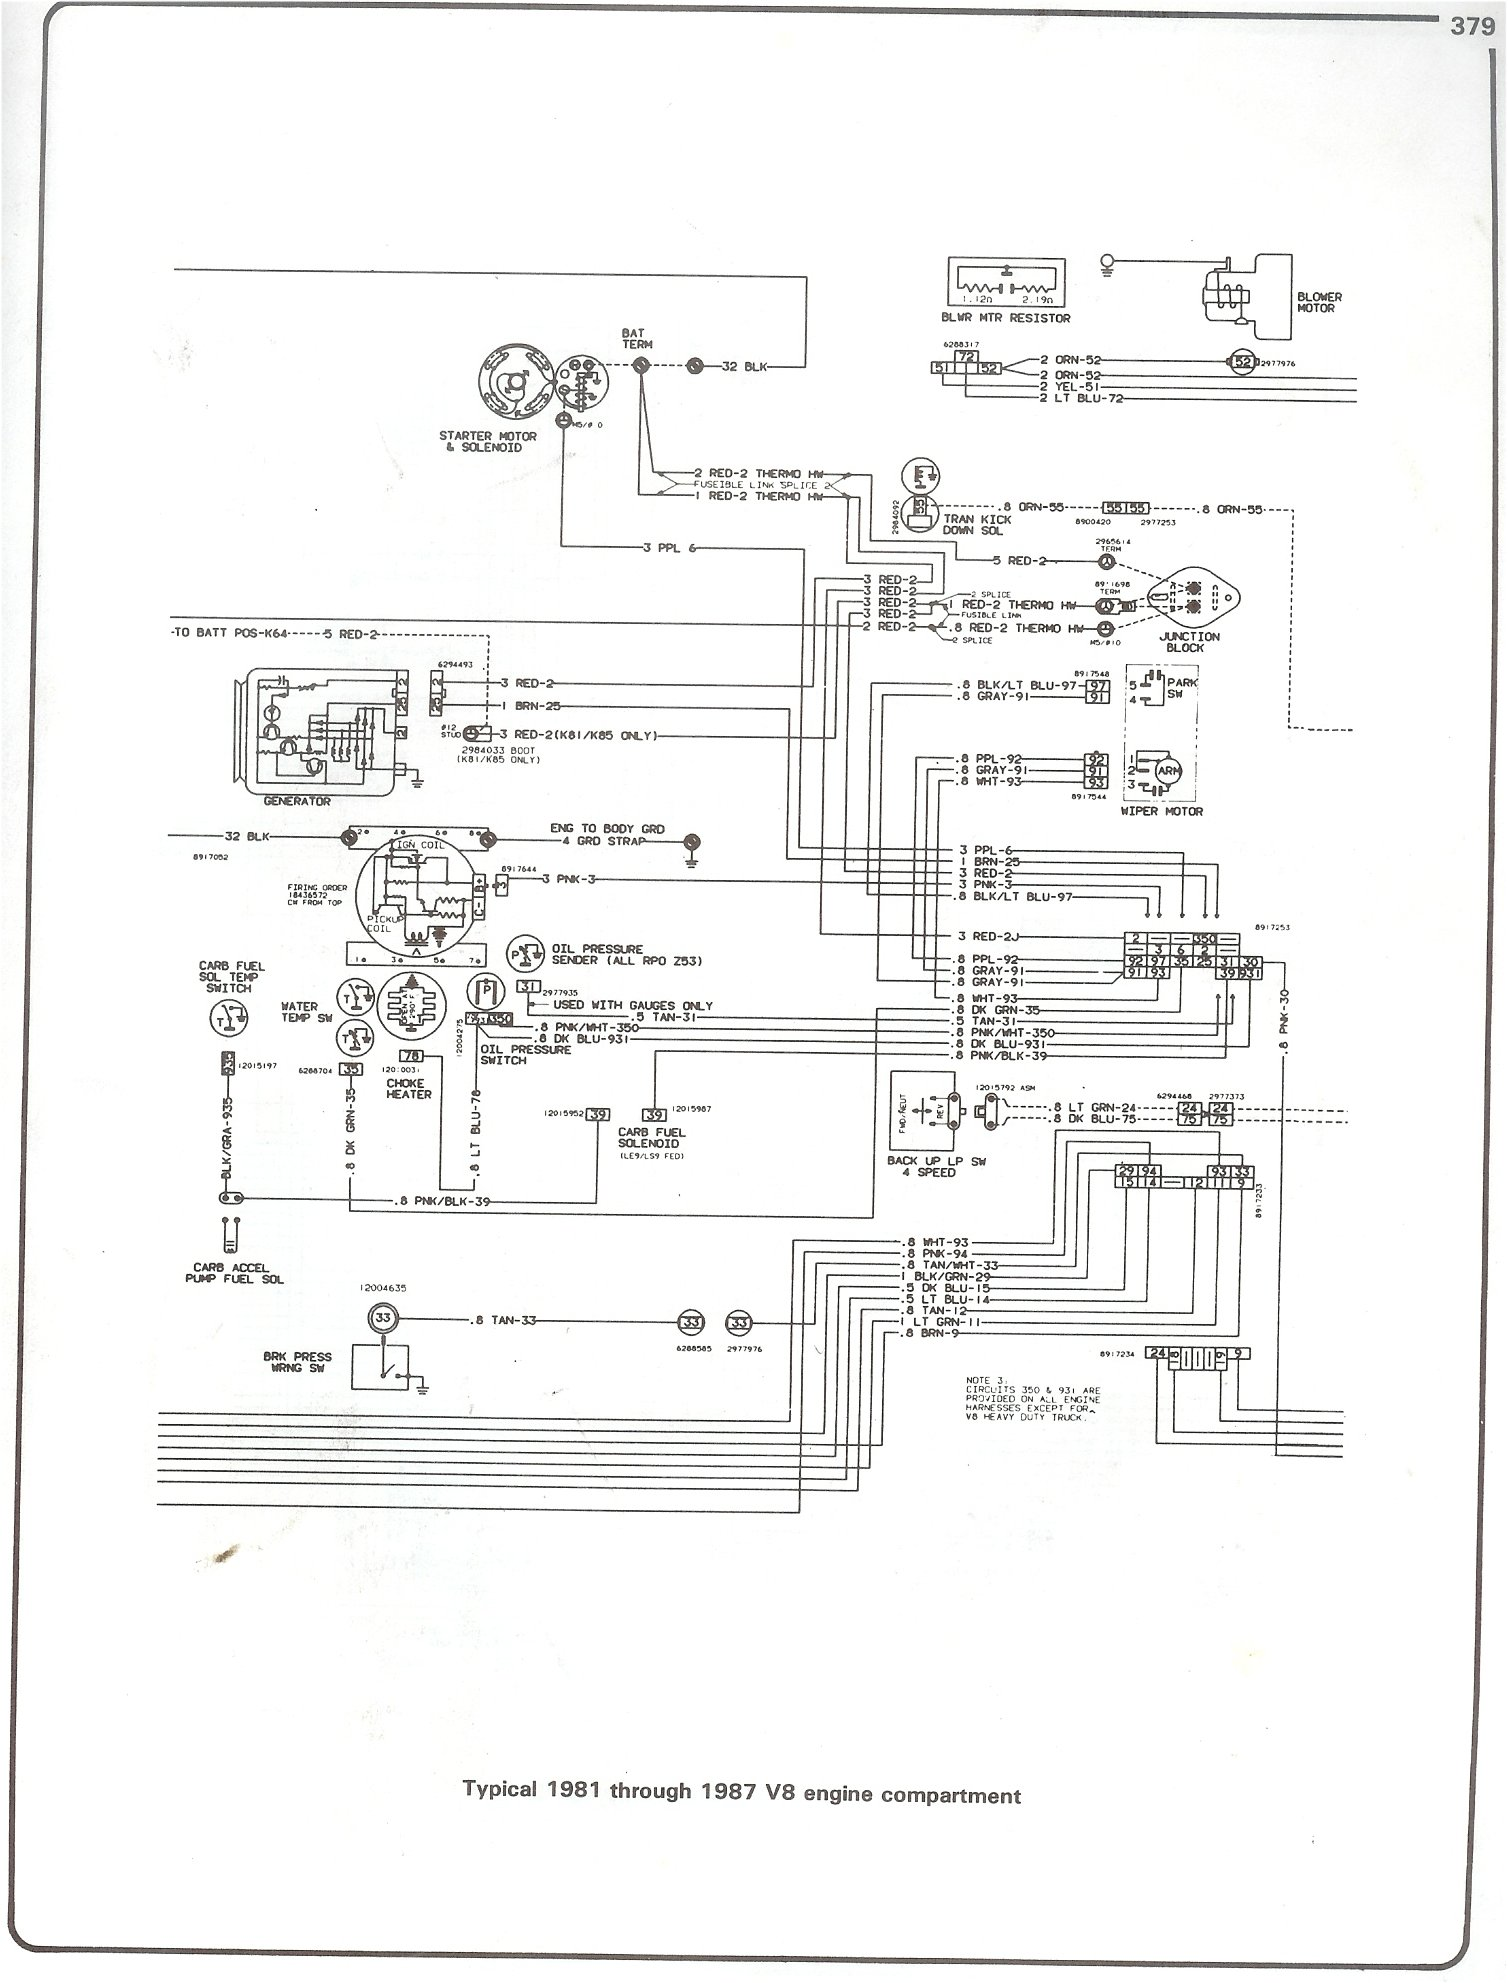 73 Dodge Truck Wiring Diagram Opinions About 1991 Pickup 1981 C10 Harness Detailed Schematics Rh Highcliffemedicalcentre Com 1975 2001